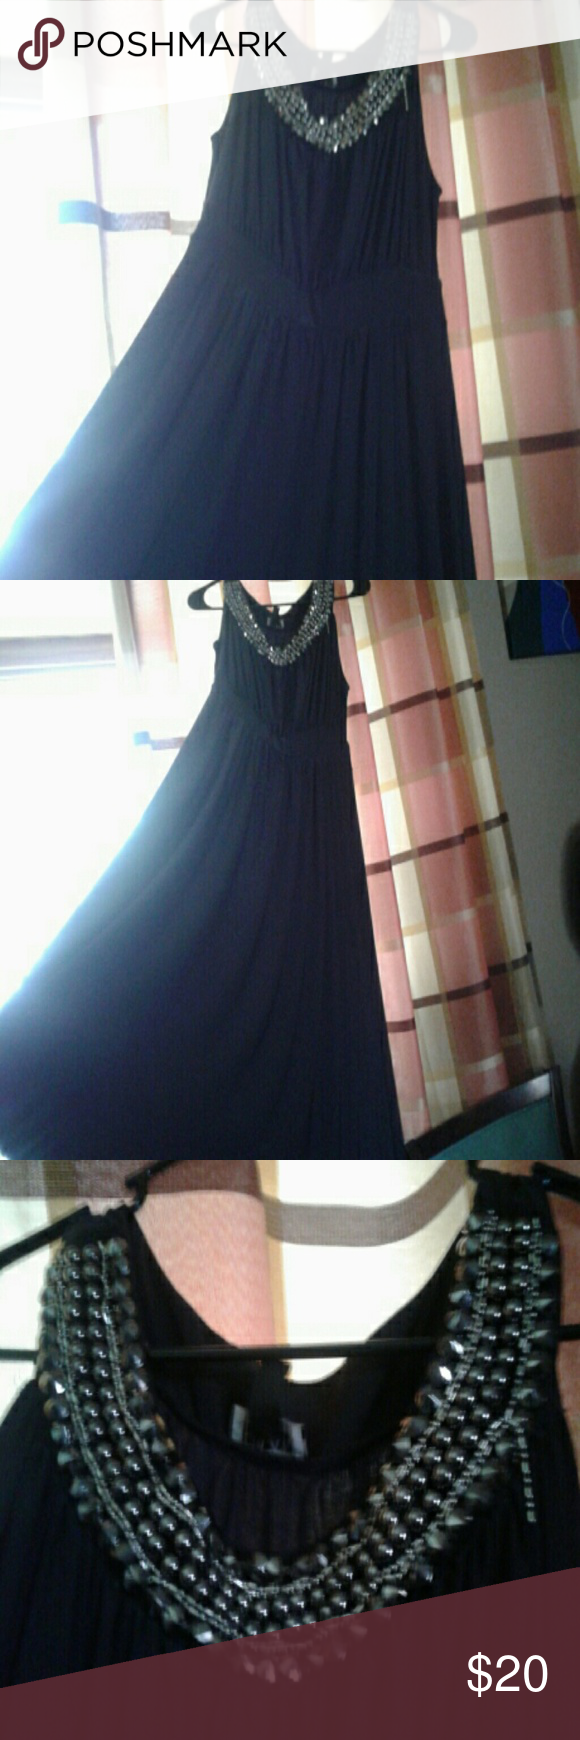 Haani dress long black dress with sequins and gems at the top minor